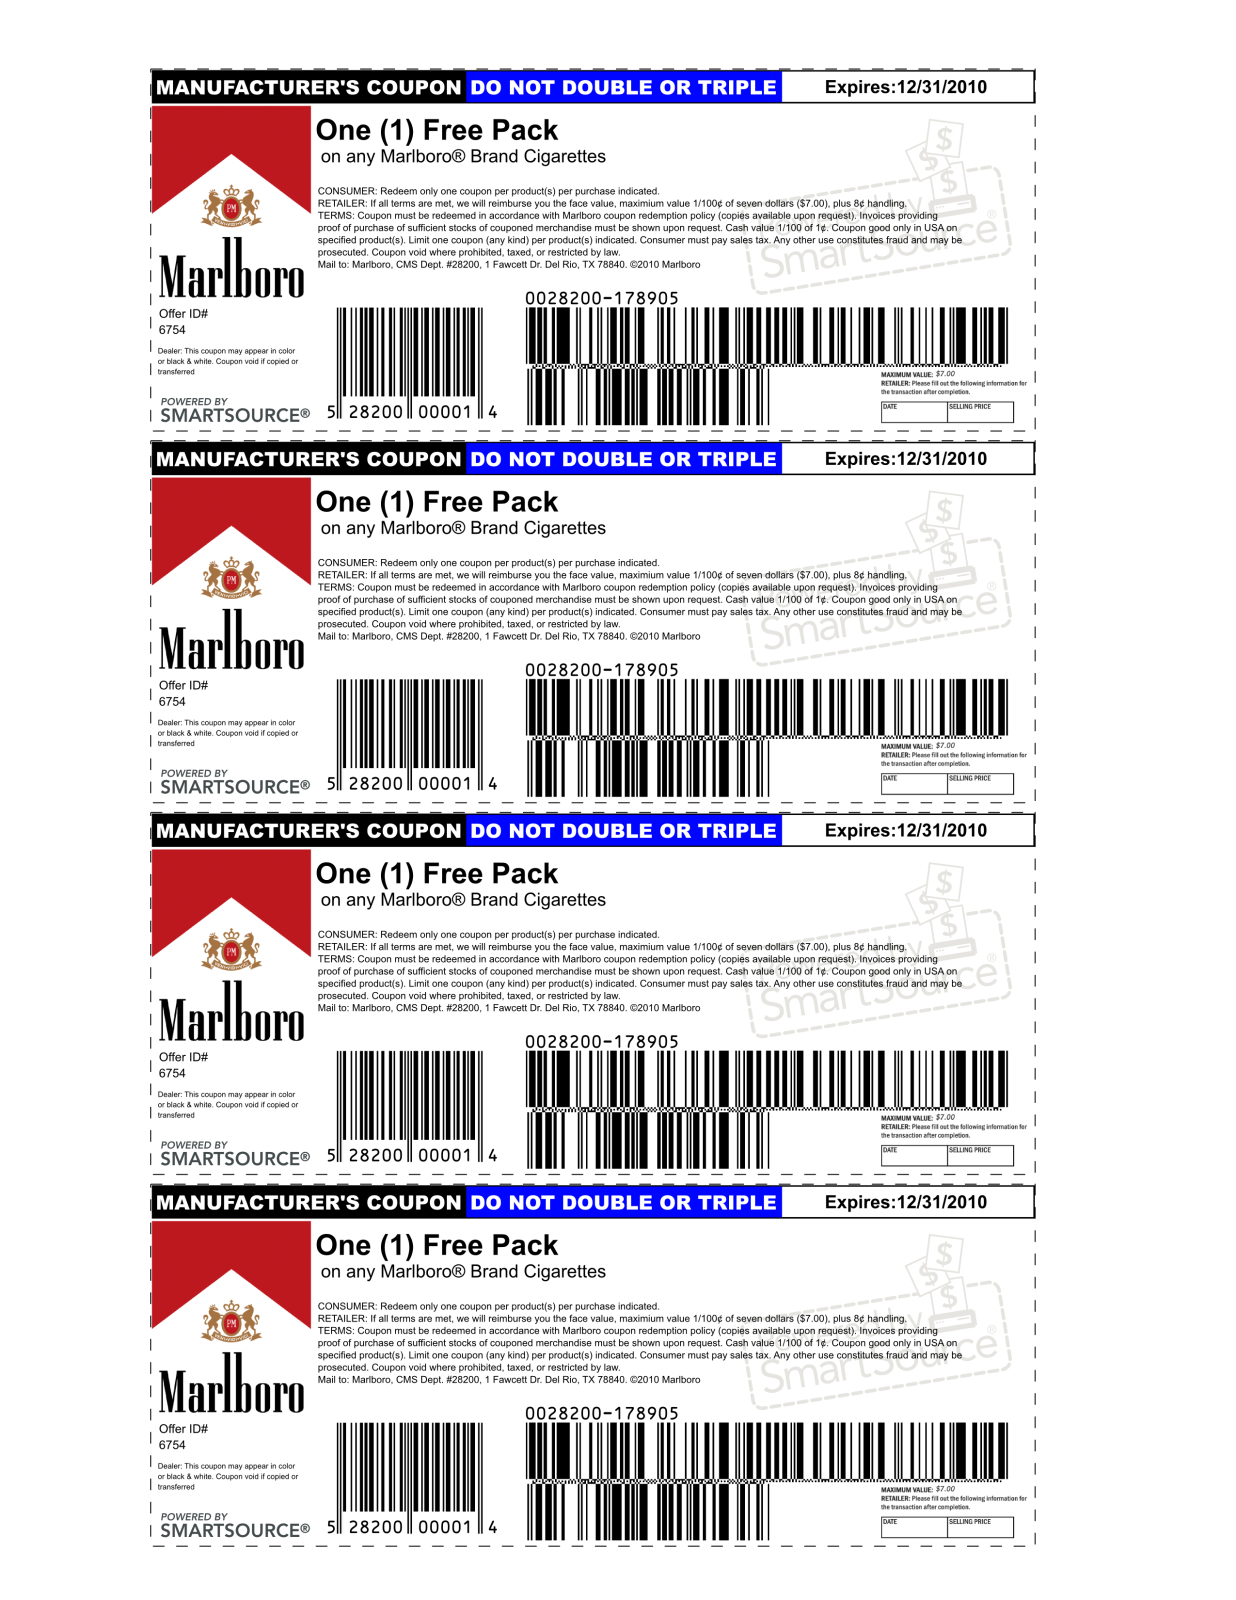 Marlboro Coupons Printable 2013 | Is Using A Possibly Fake Coupon - Free Printable Cigarette Coupons